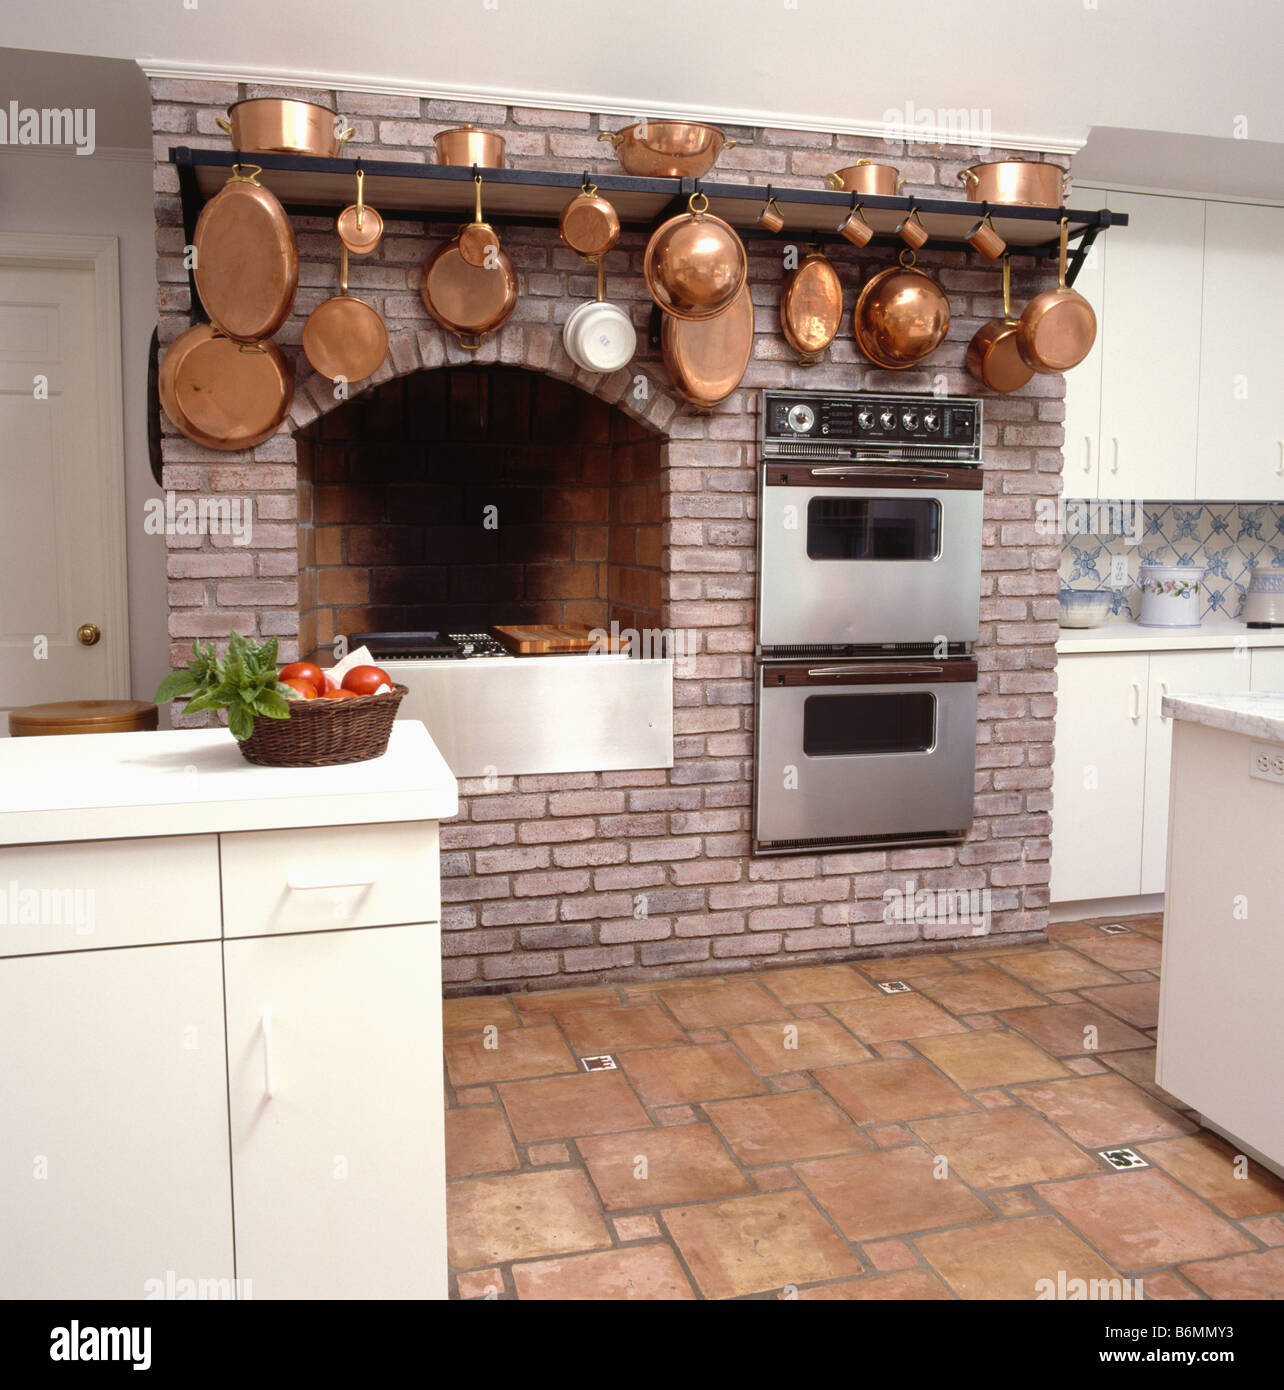 Terracotta Floor Tiles Kitchen Copper Pans On Rack Above Double Ovens And Hob Fitted Into Brick